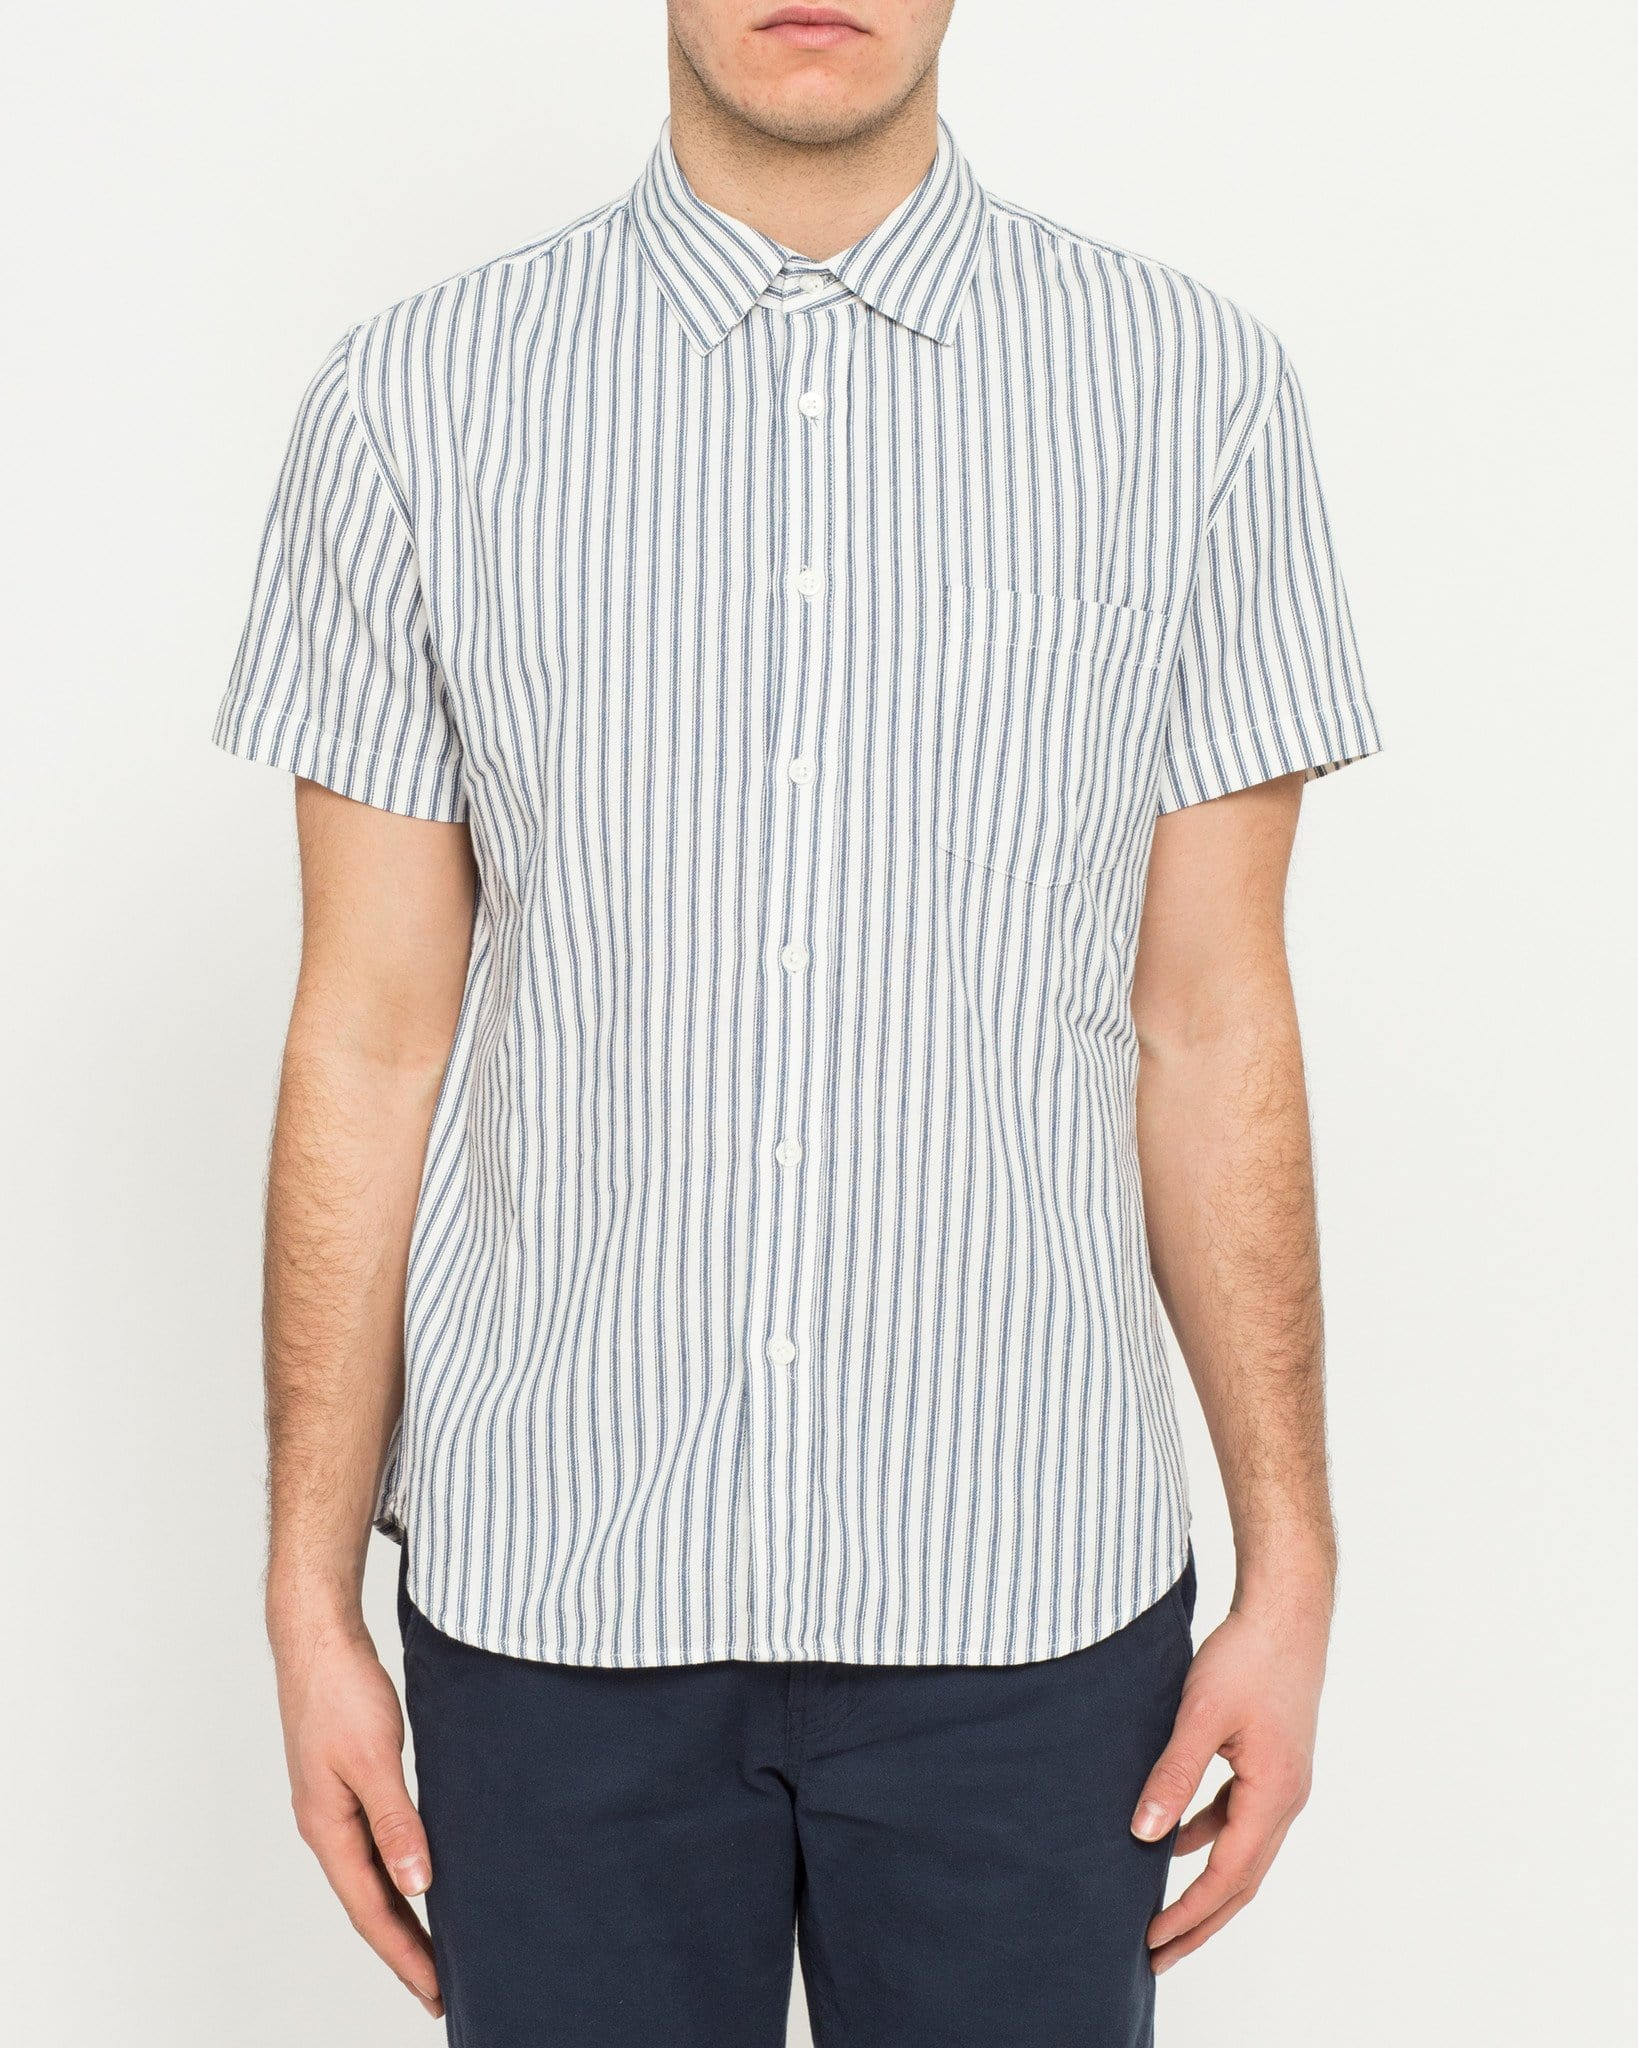 Ticking Stripe - Navy